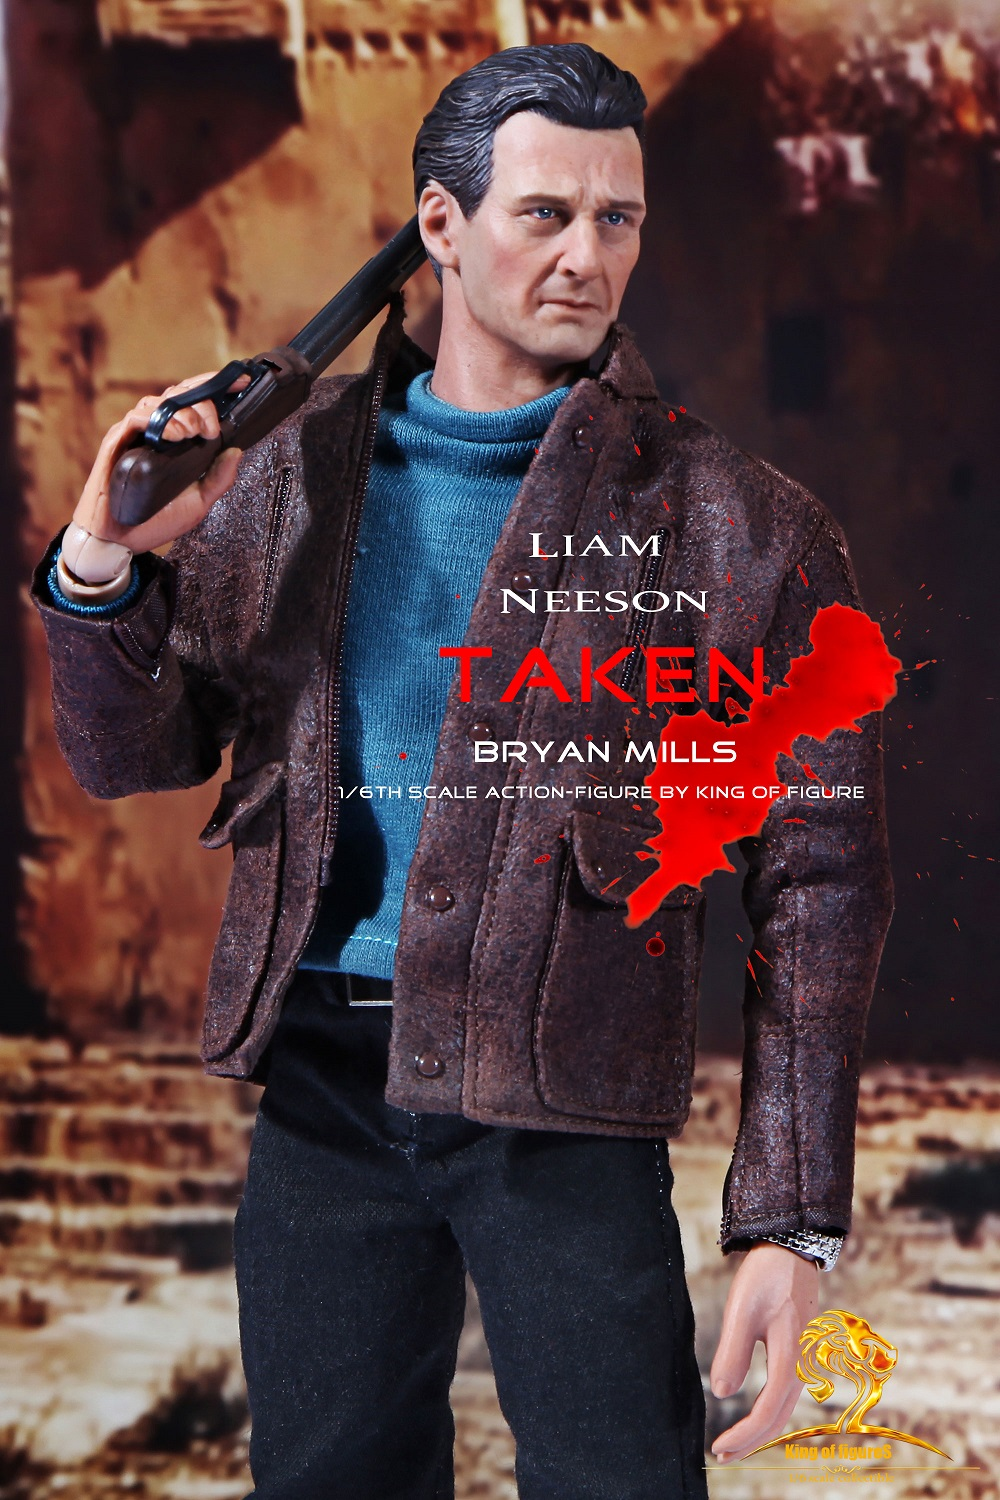 King of Figures KS001 1/6 Liam Neeson Taken Bryan Mills